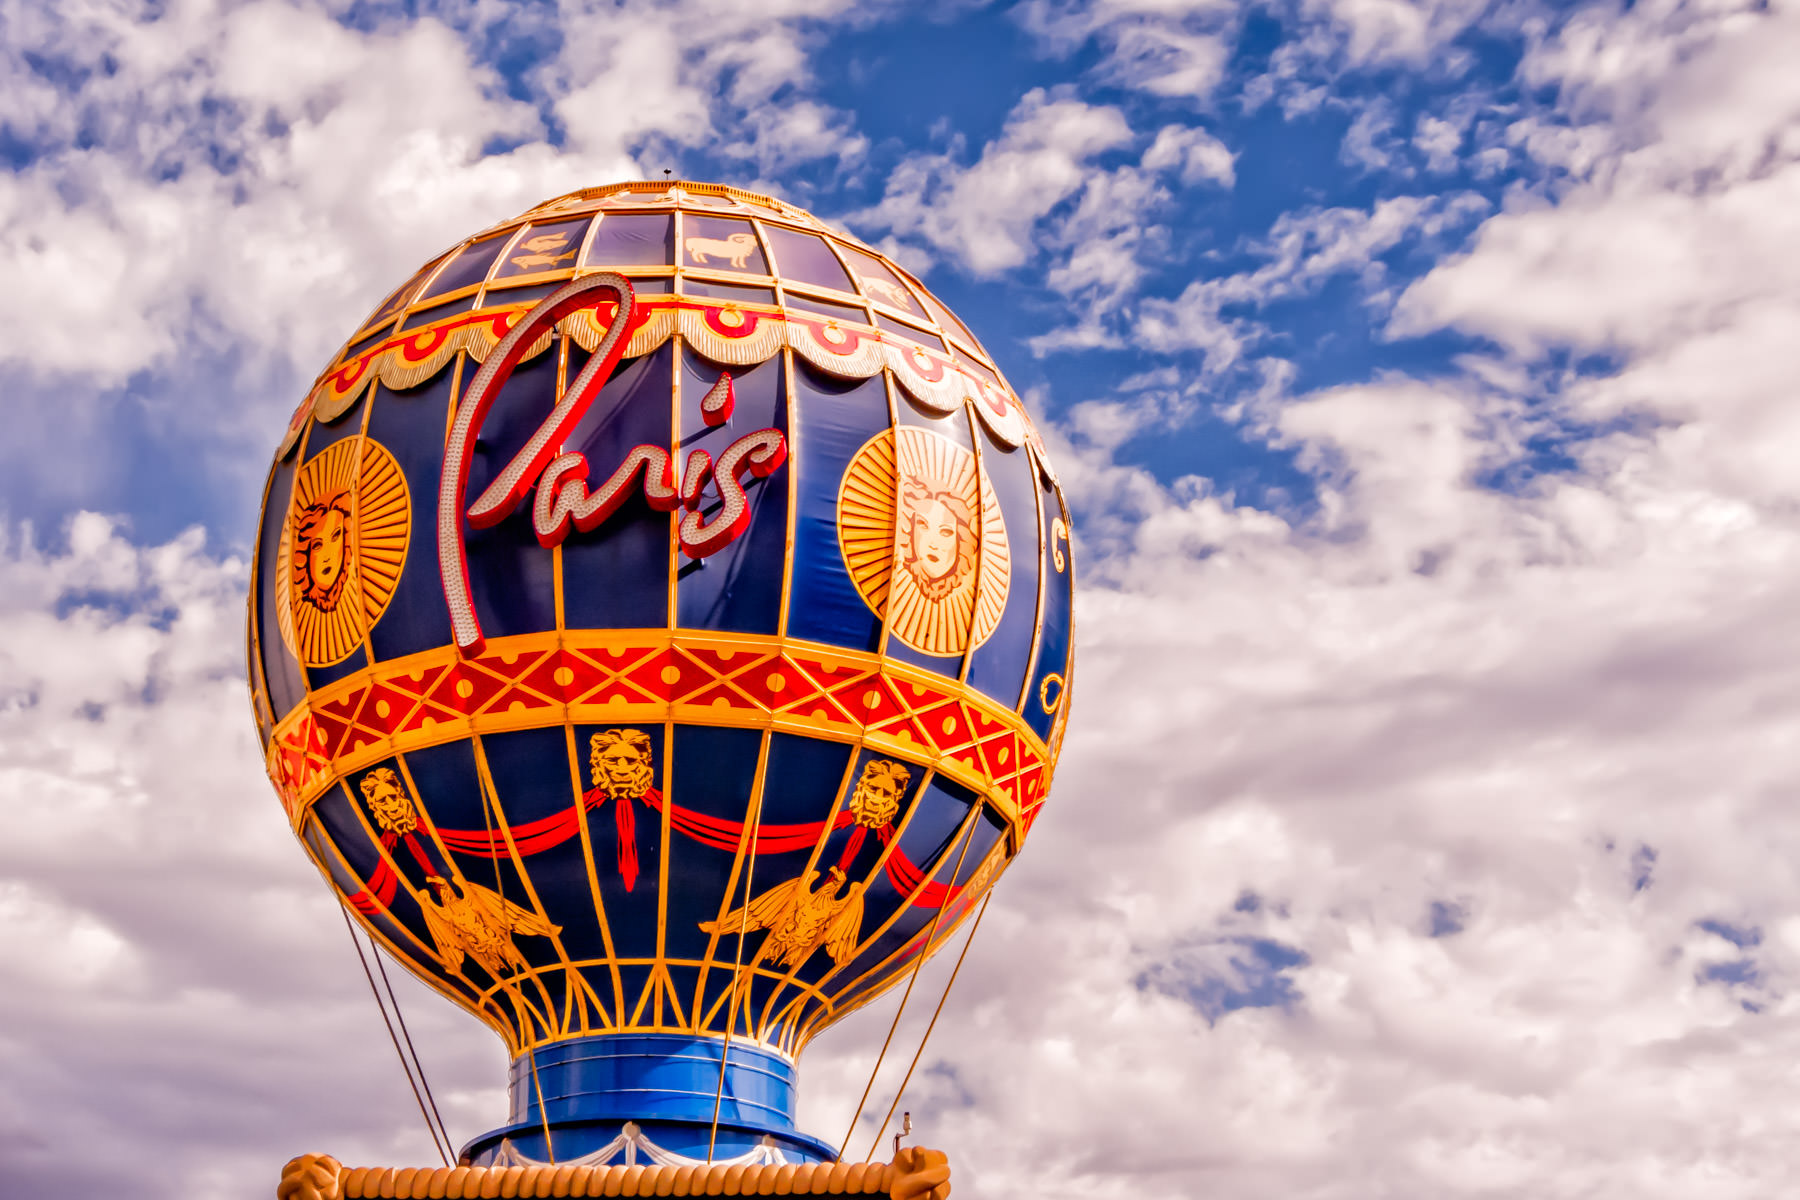 The balloon-shaped sign at Las Vegas' Paris Hotel and Casino.